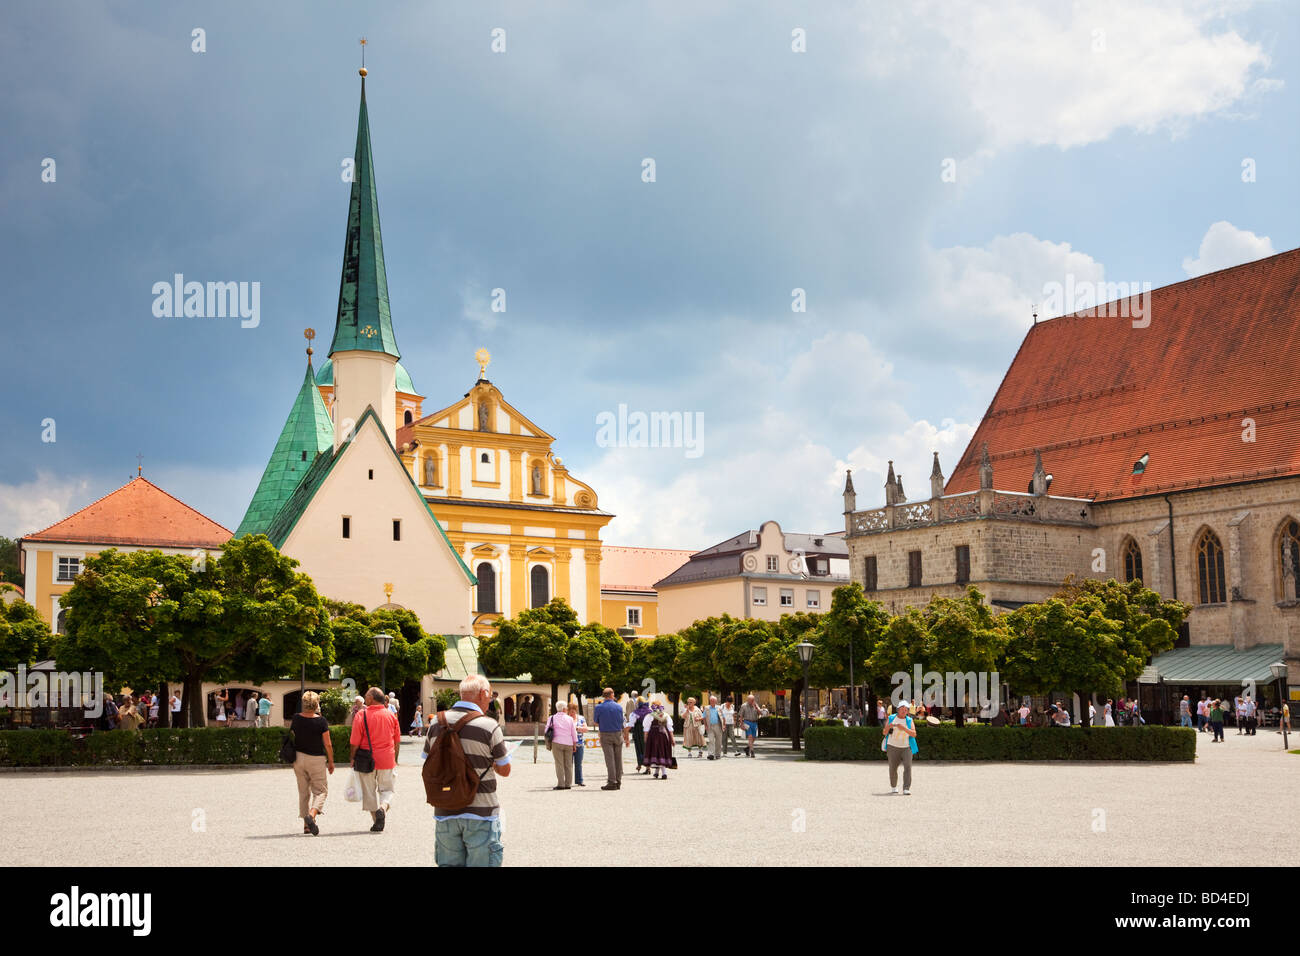 Chapel of the Miraculous Image and Church of St Magdalene in Kapellplatz Square in Altotting, Bavaria, Germany, Stock Photo